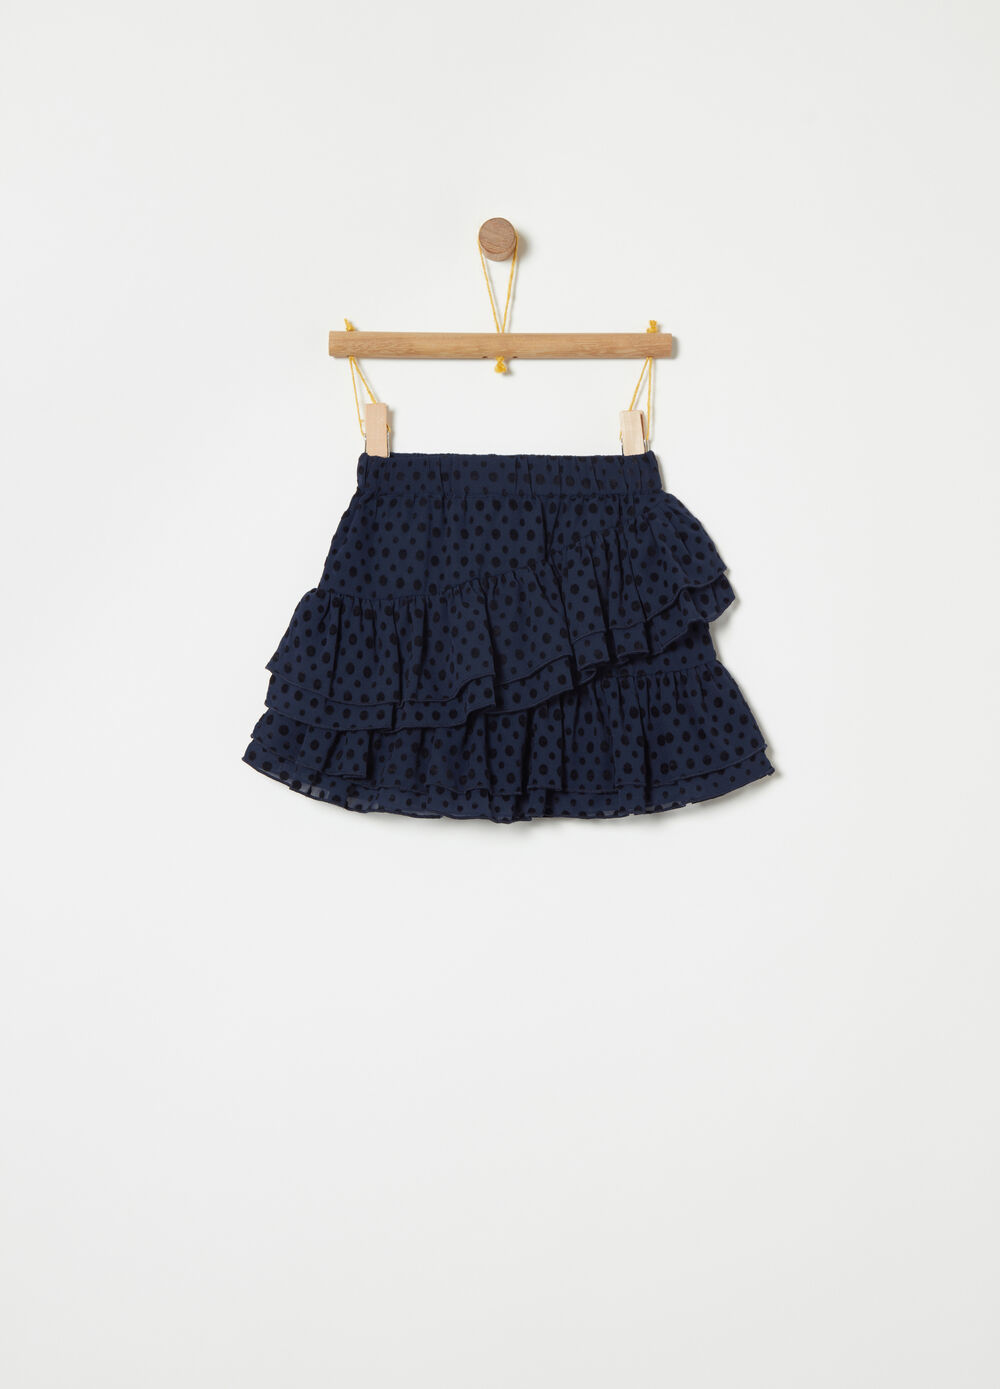 Devoré skirt with flounces and elastic waist